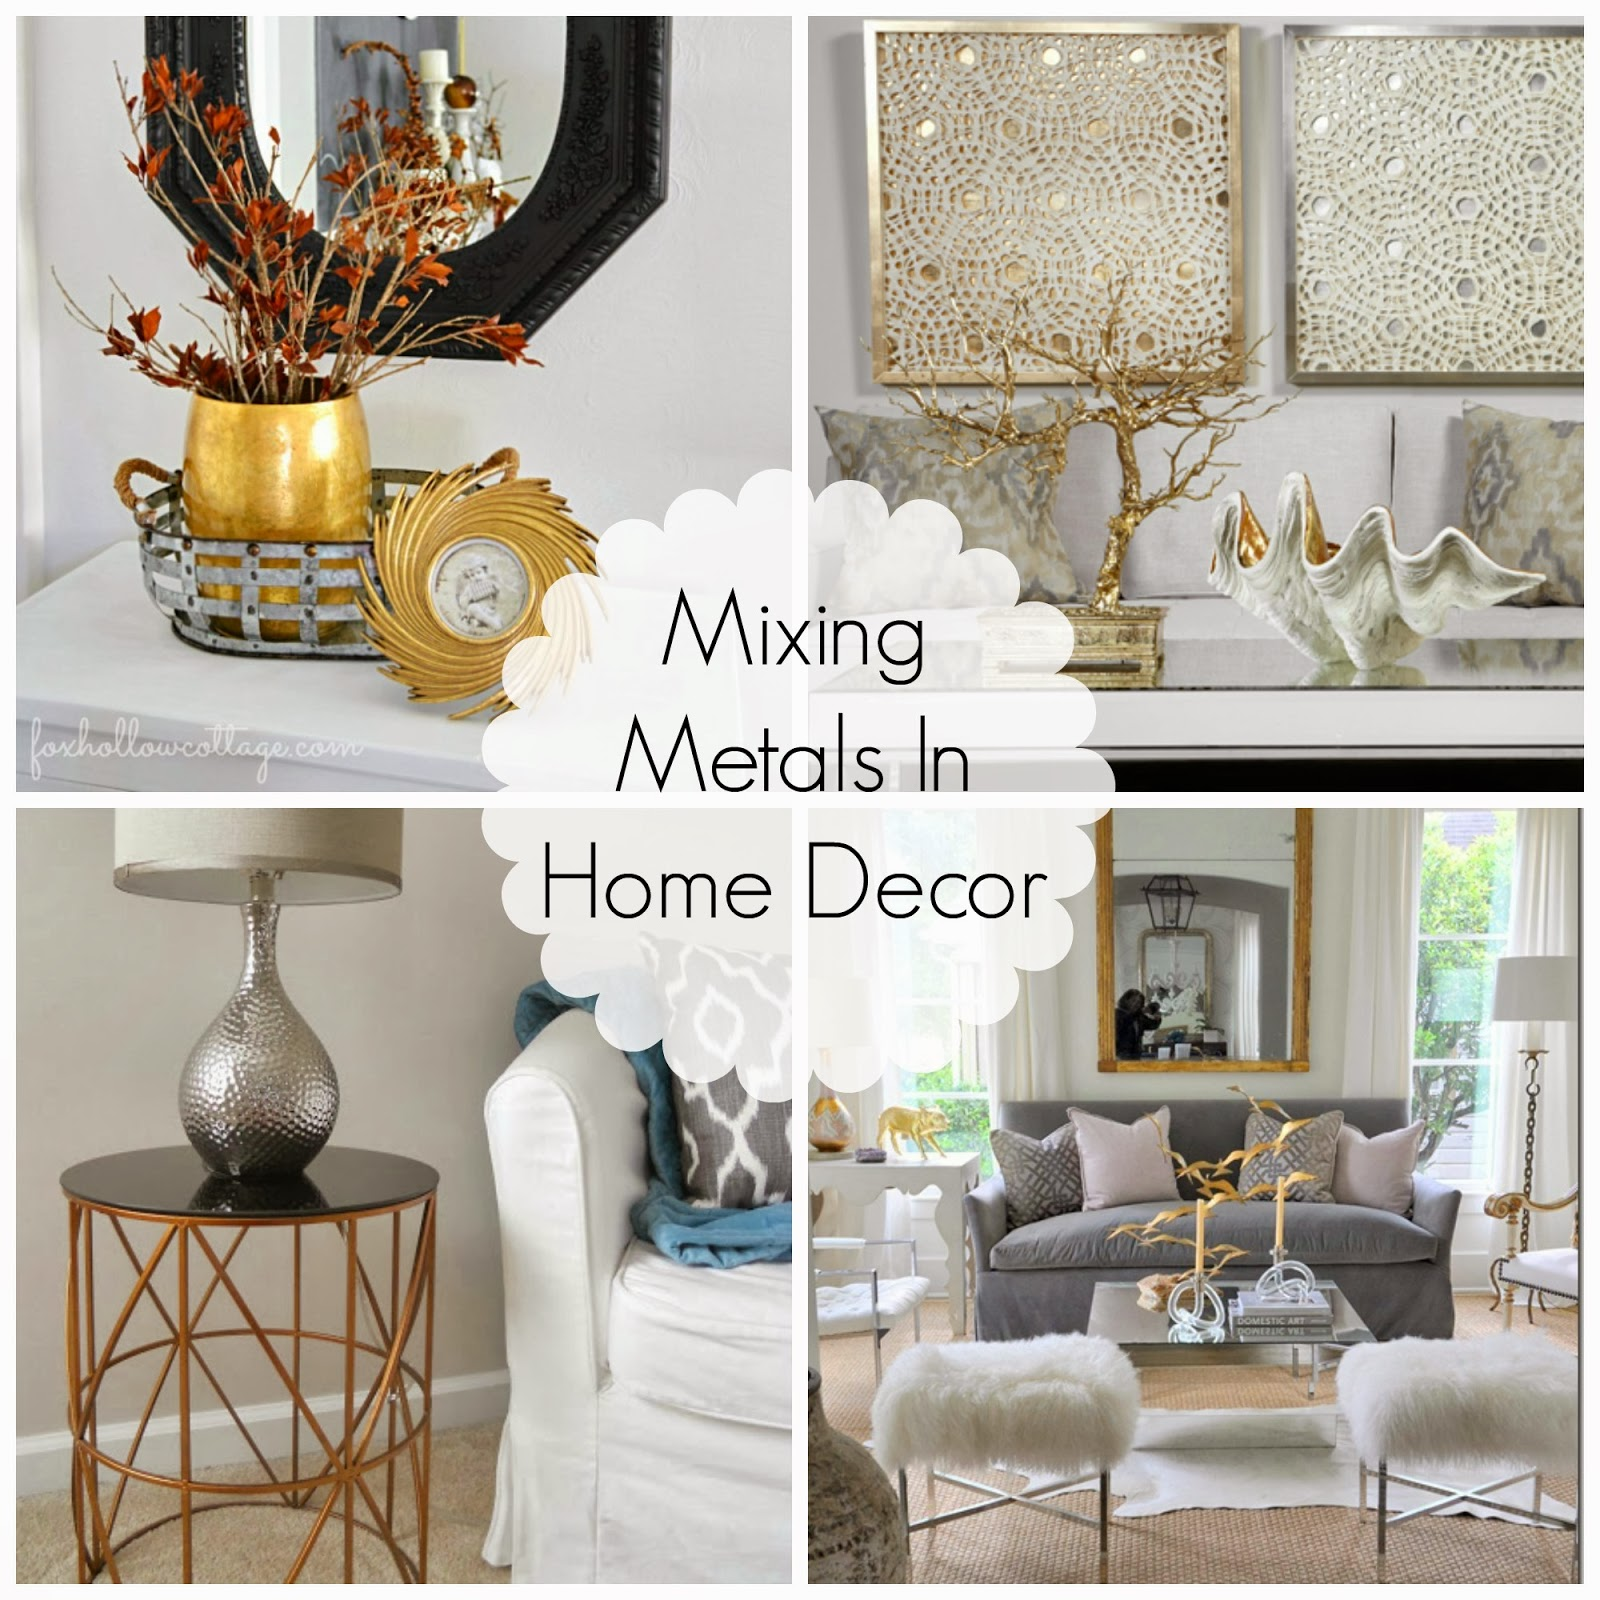 Mixing Metals In Home Decor Just Like With Jewelry There Were These Rules About Not The Diffe I Used To Wear A Lot Of Gold But